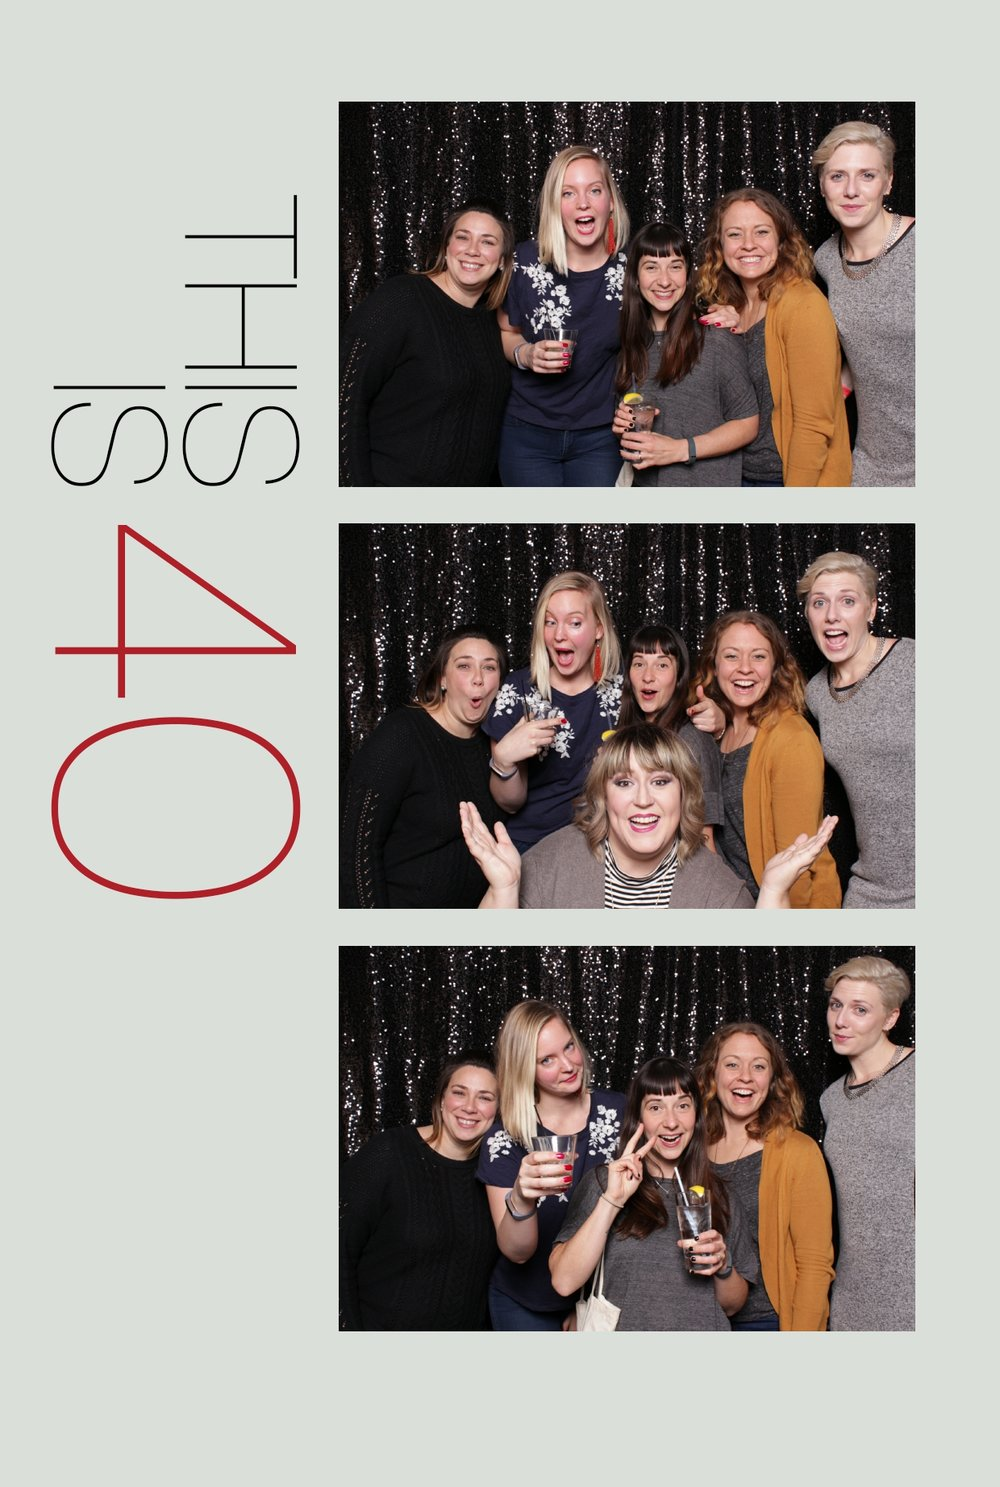 Minneapolis_birthday_party_photo_booth_rentals (5).jpg